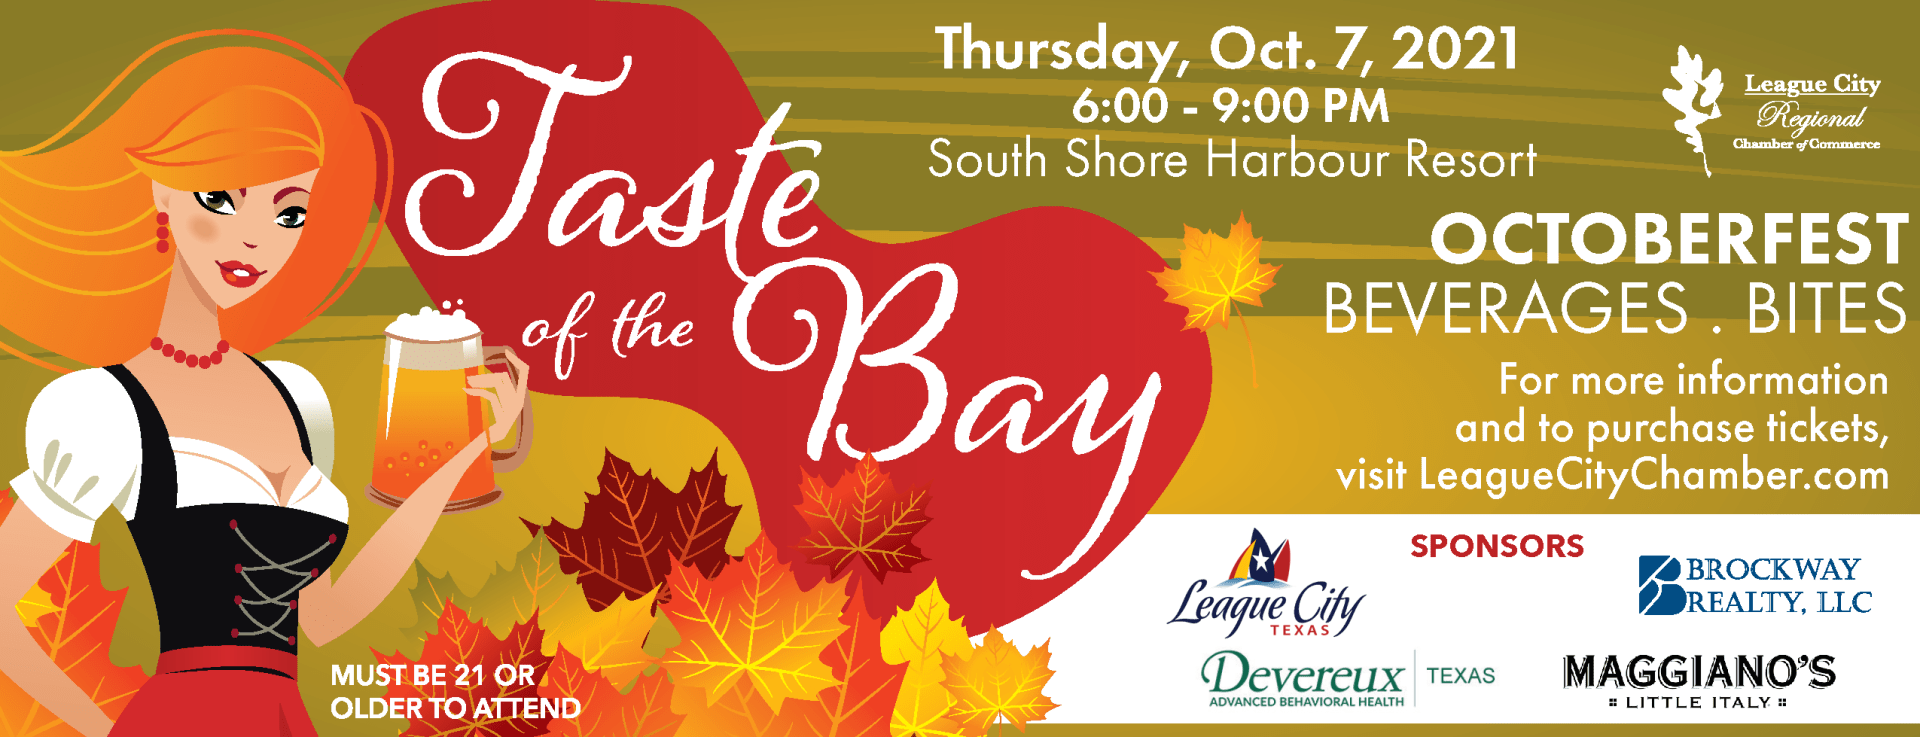 Taste-of-the-Bay-FB-cover-ART-w1920.png